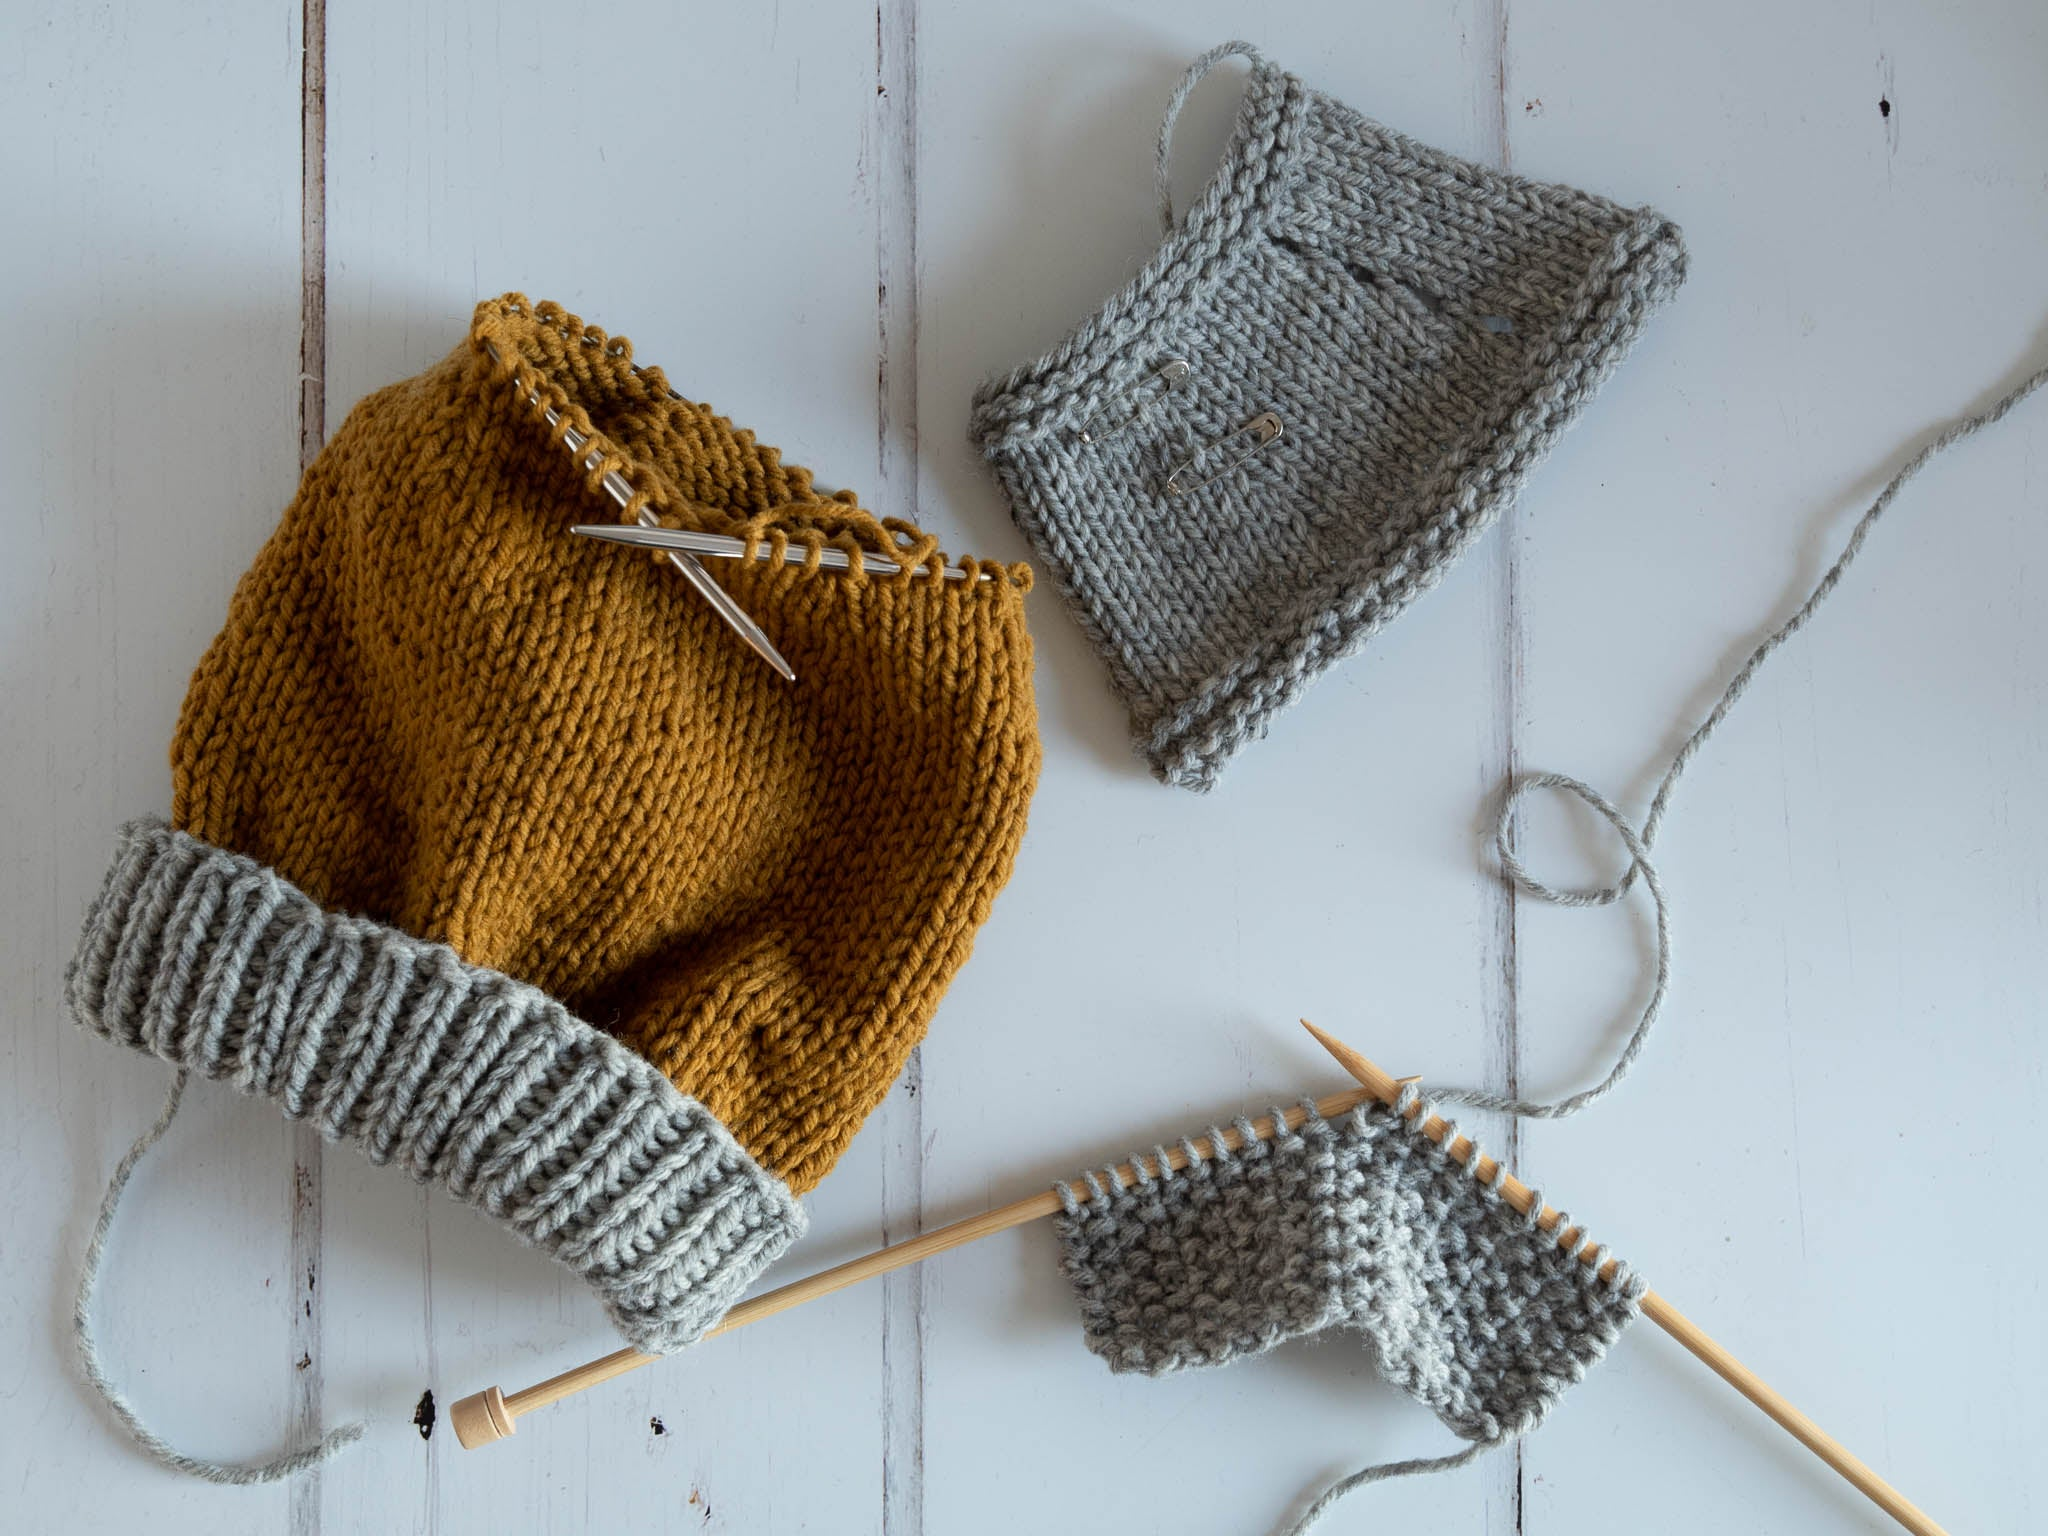 three pieces of knitting laying on a flat surface, two of which are grey swatches and one is a project in the round with a grey ribbed brim.